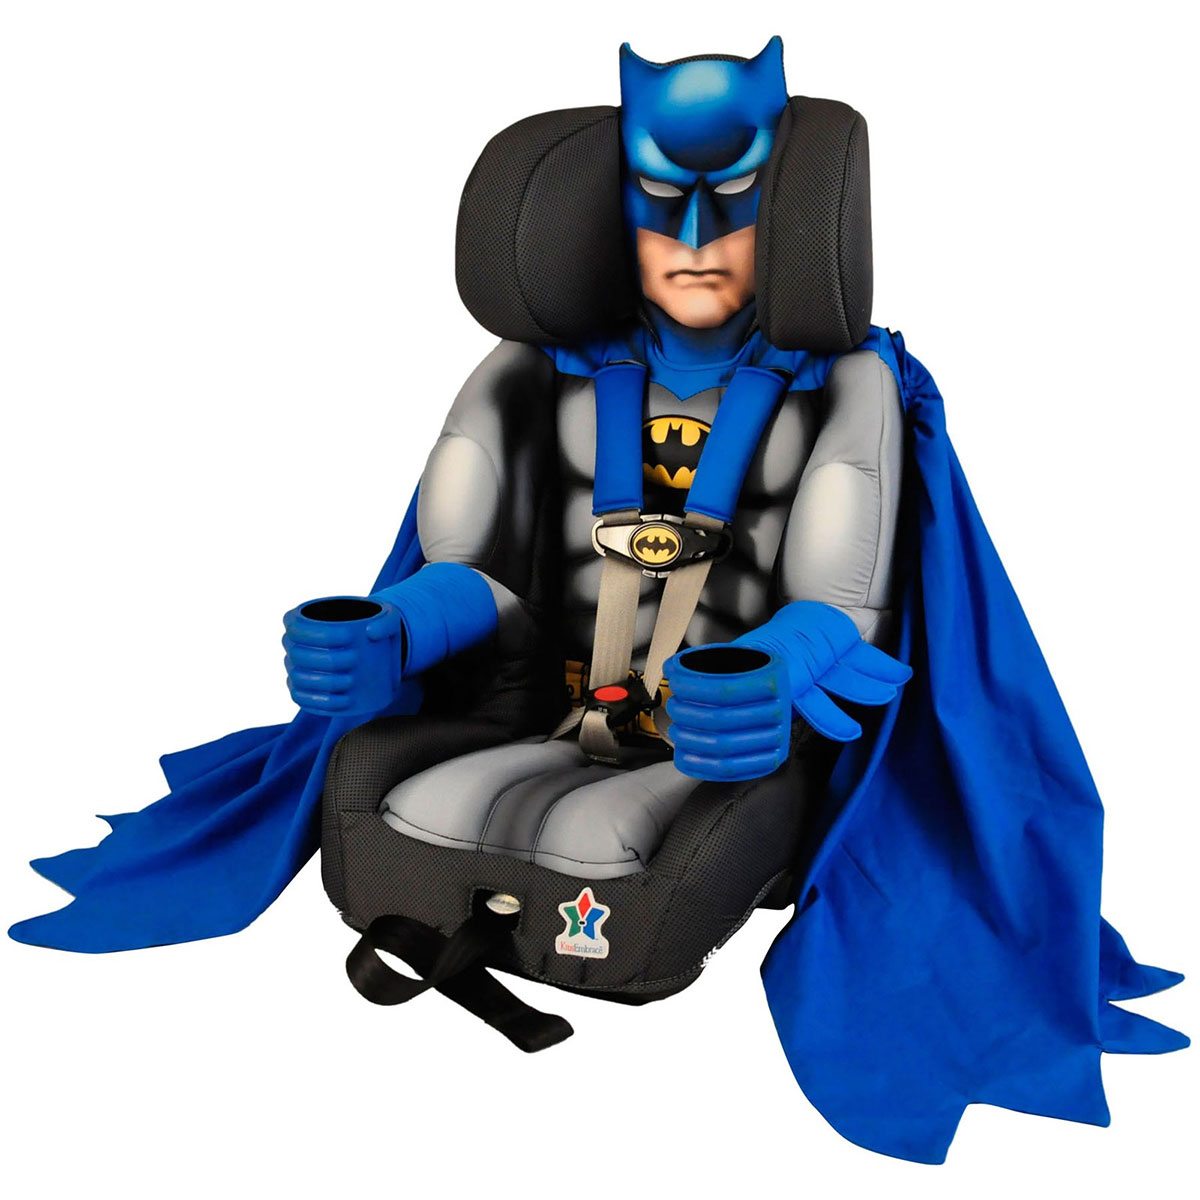 Booster Car Seats For Toddlers For Sale